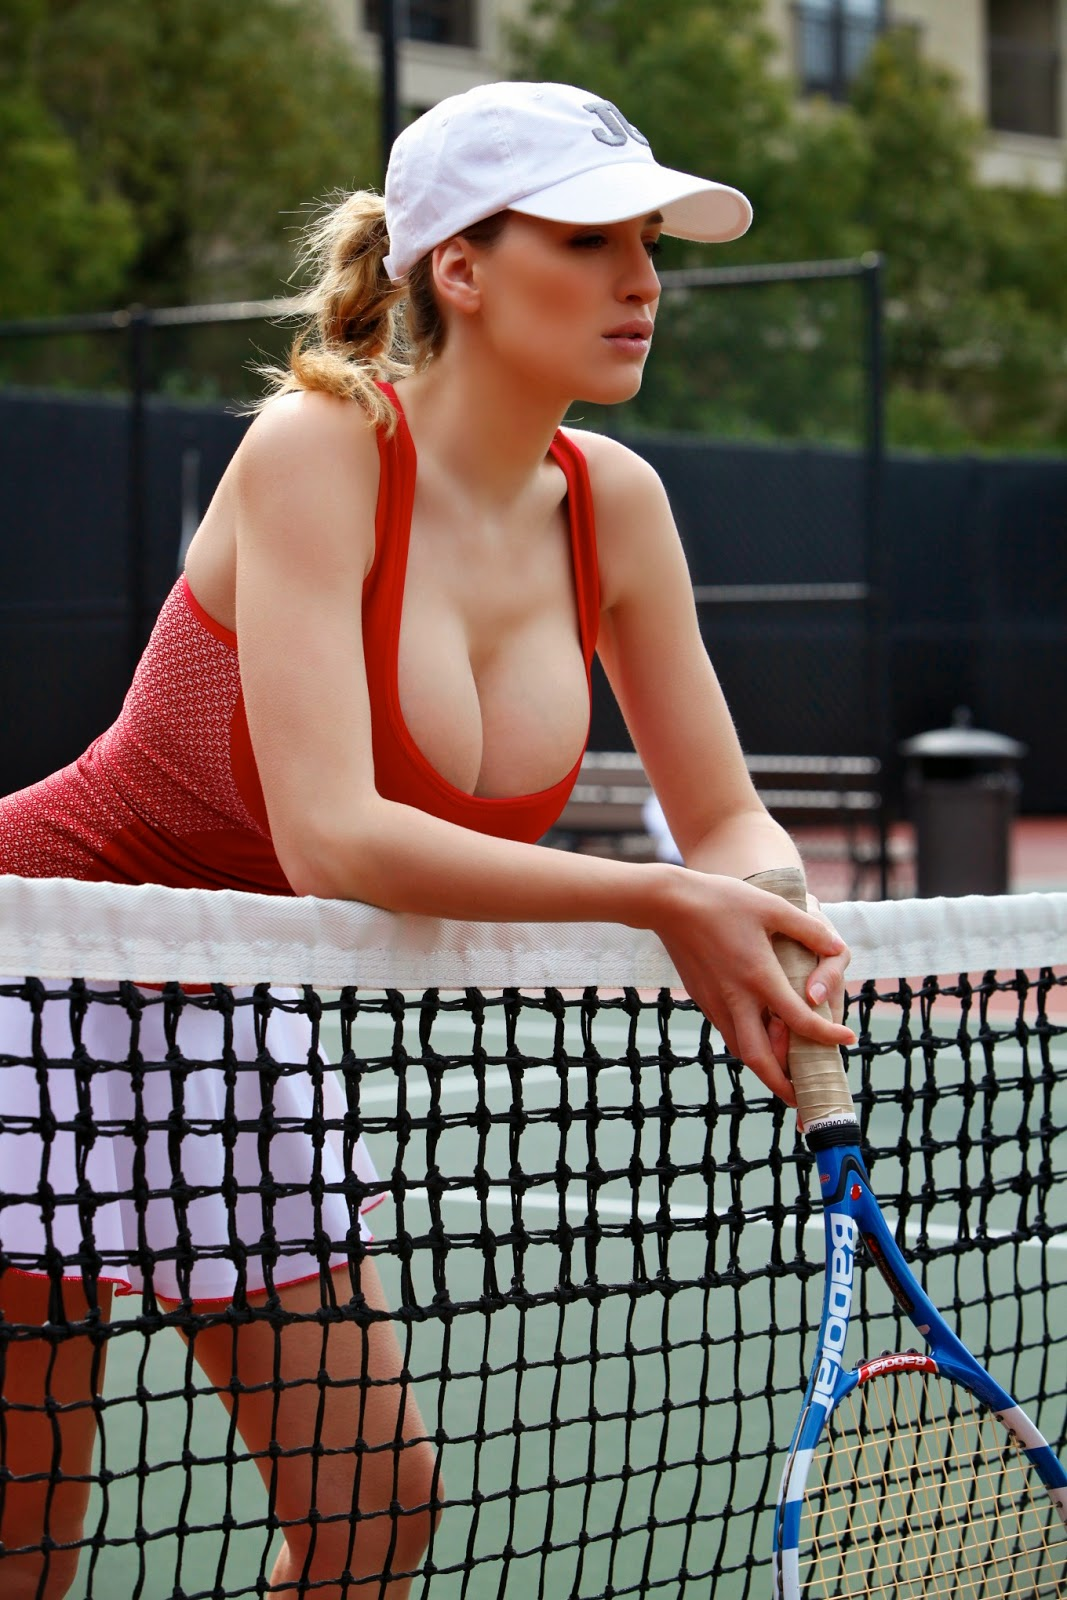 Jordan Carver Playing Hot Tennis Big Boobs Cleavage Show -5859